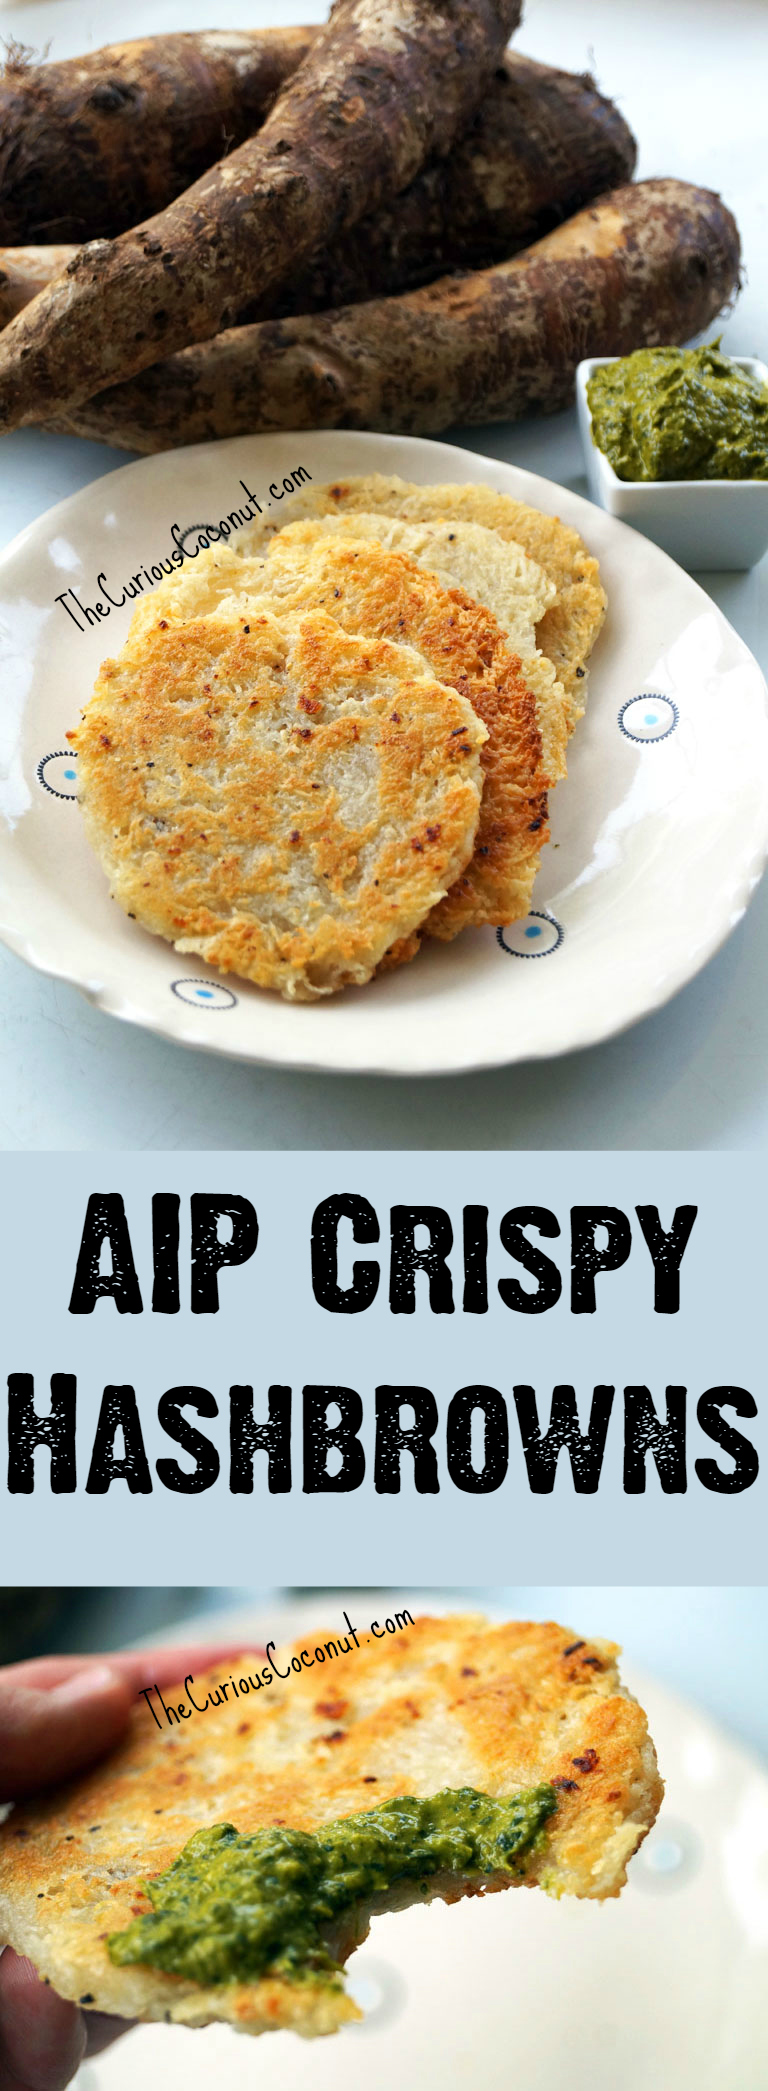 AIP Crispy Hashbrowns - no potatoes, no problem! Easy, nightshade-free, delicious, allergy-friendly // TheCuriousCoconut.com